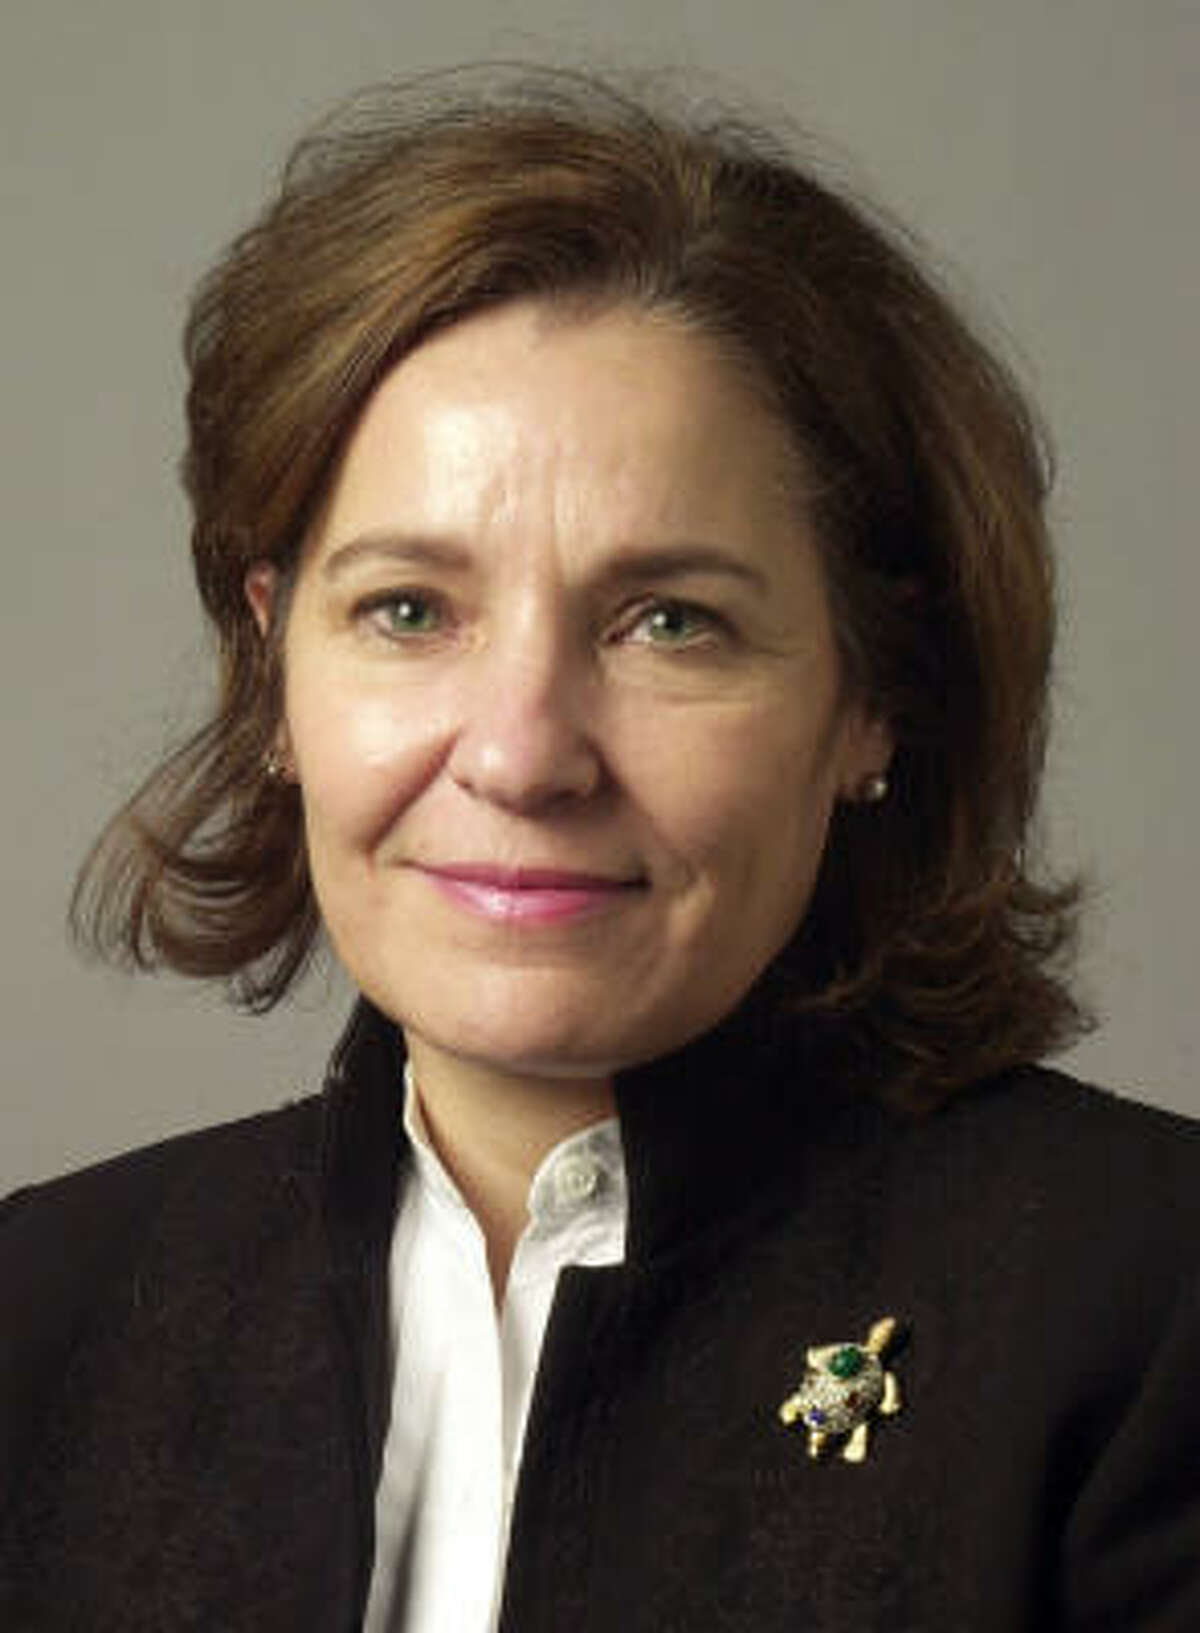 Sharon Keller is the presiding judge of the Texas Court of Criminal Appeals.